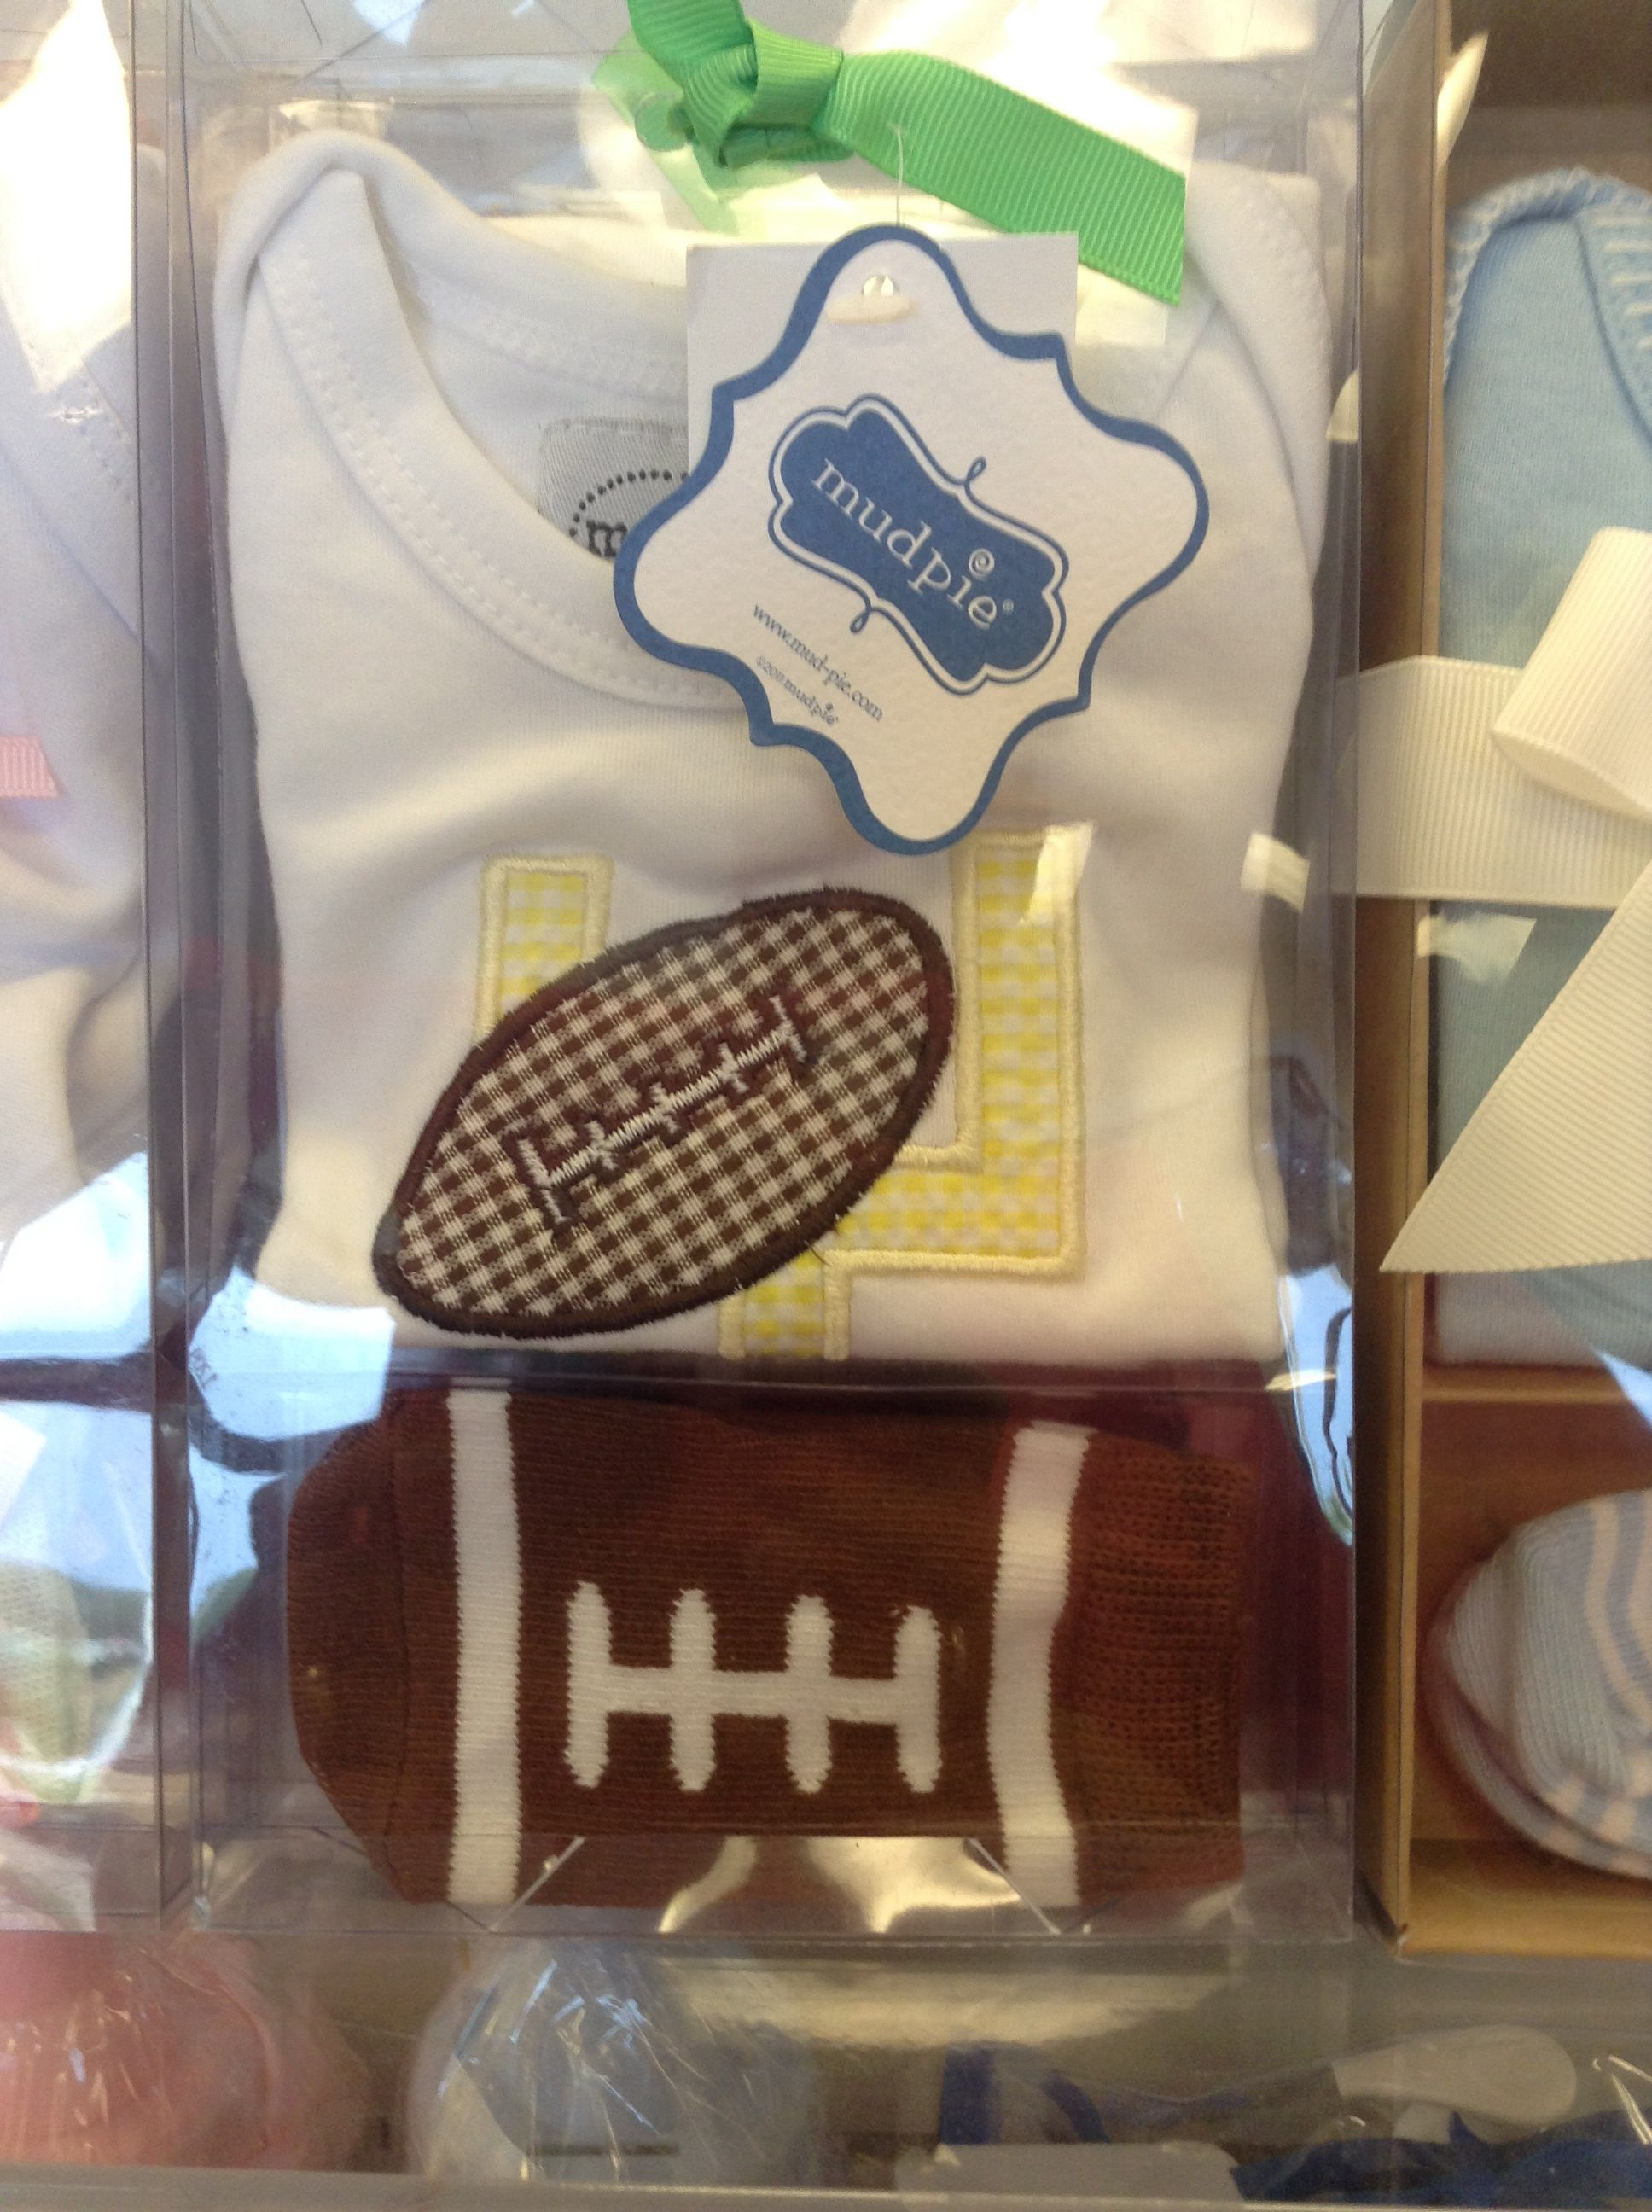 Cute little Mudpie football outfit for baby.  http://www.babylandllc.com/start.php